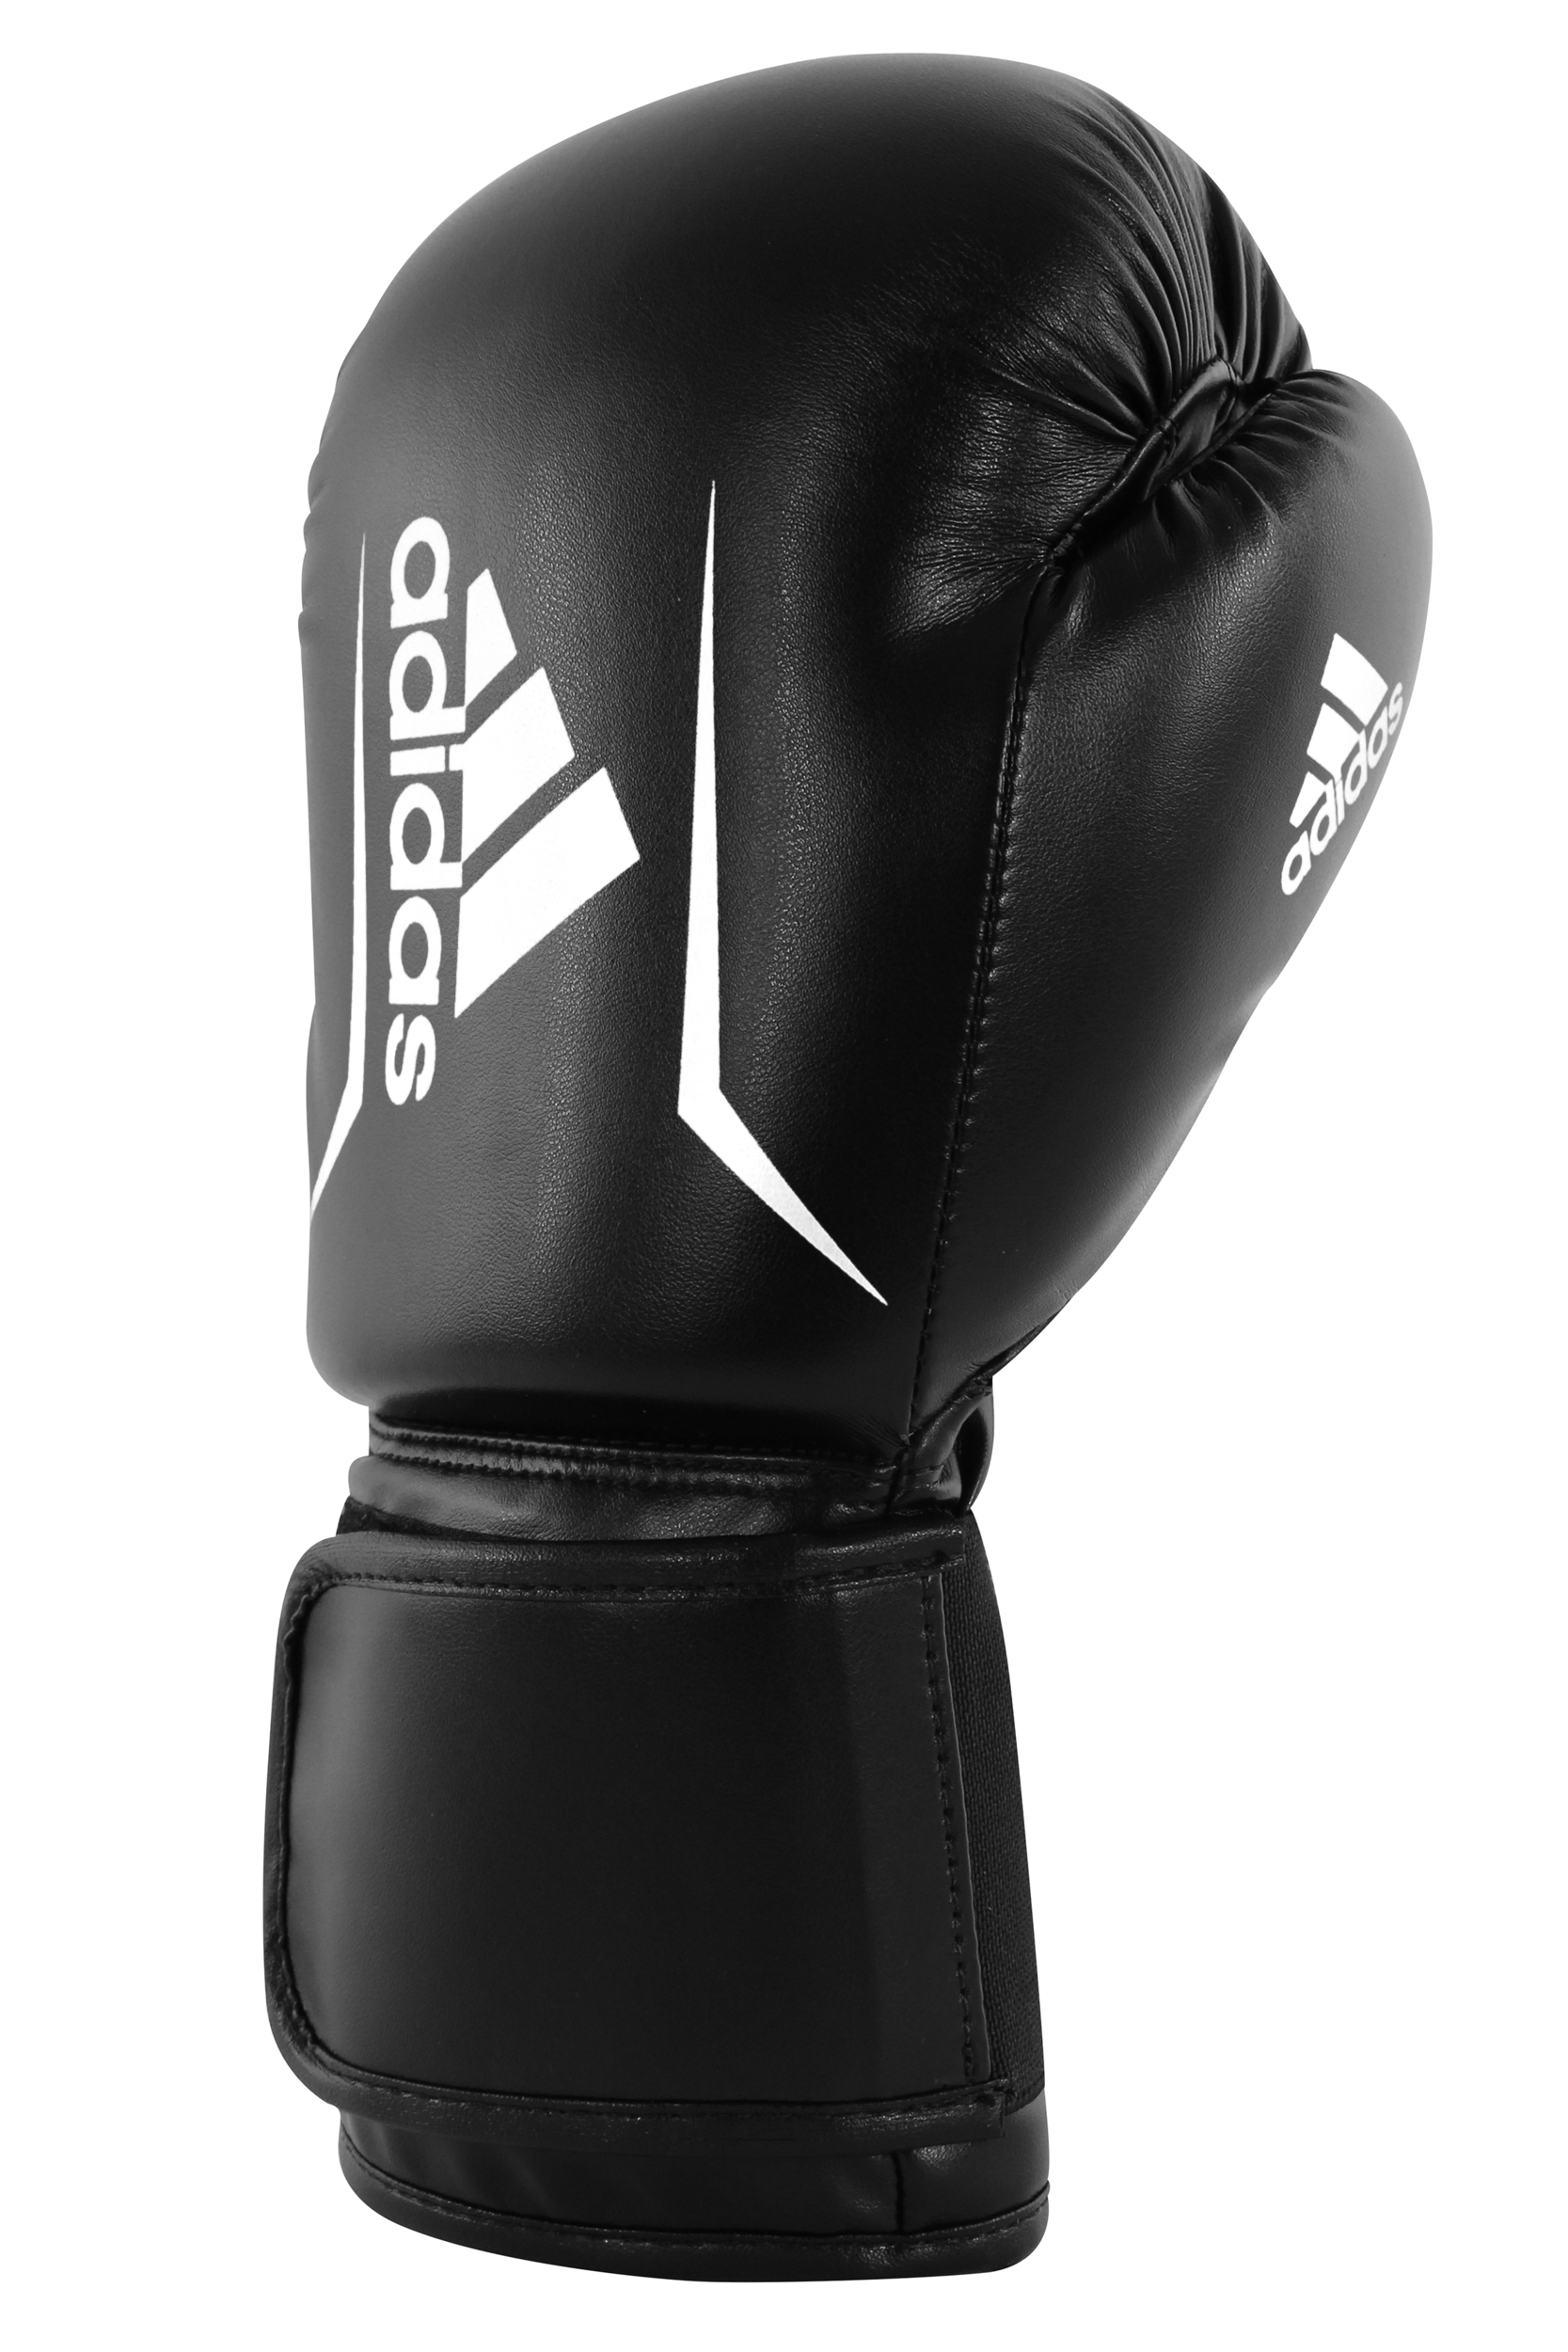 Gants de boxe Adidas speed 2018